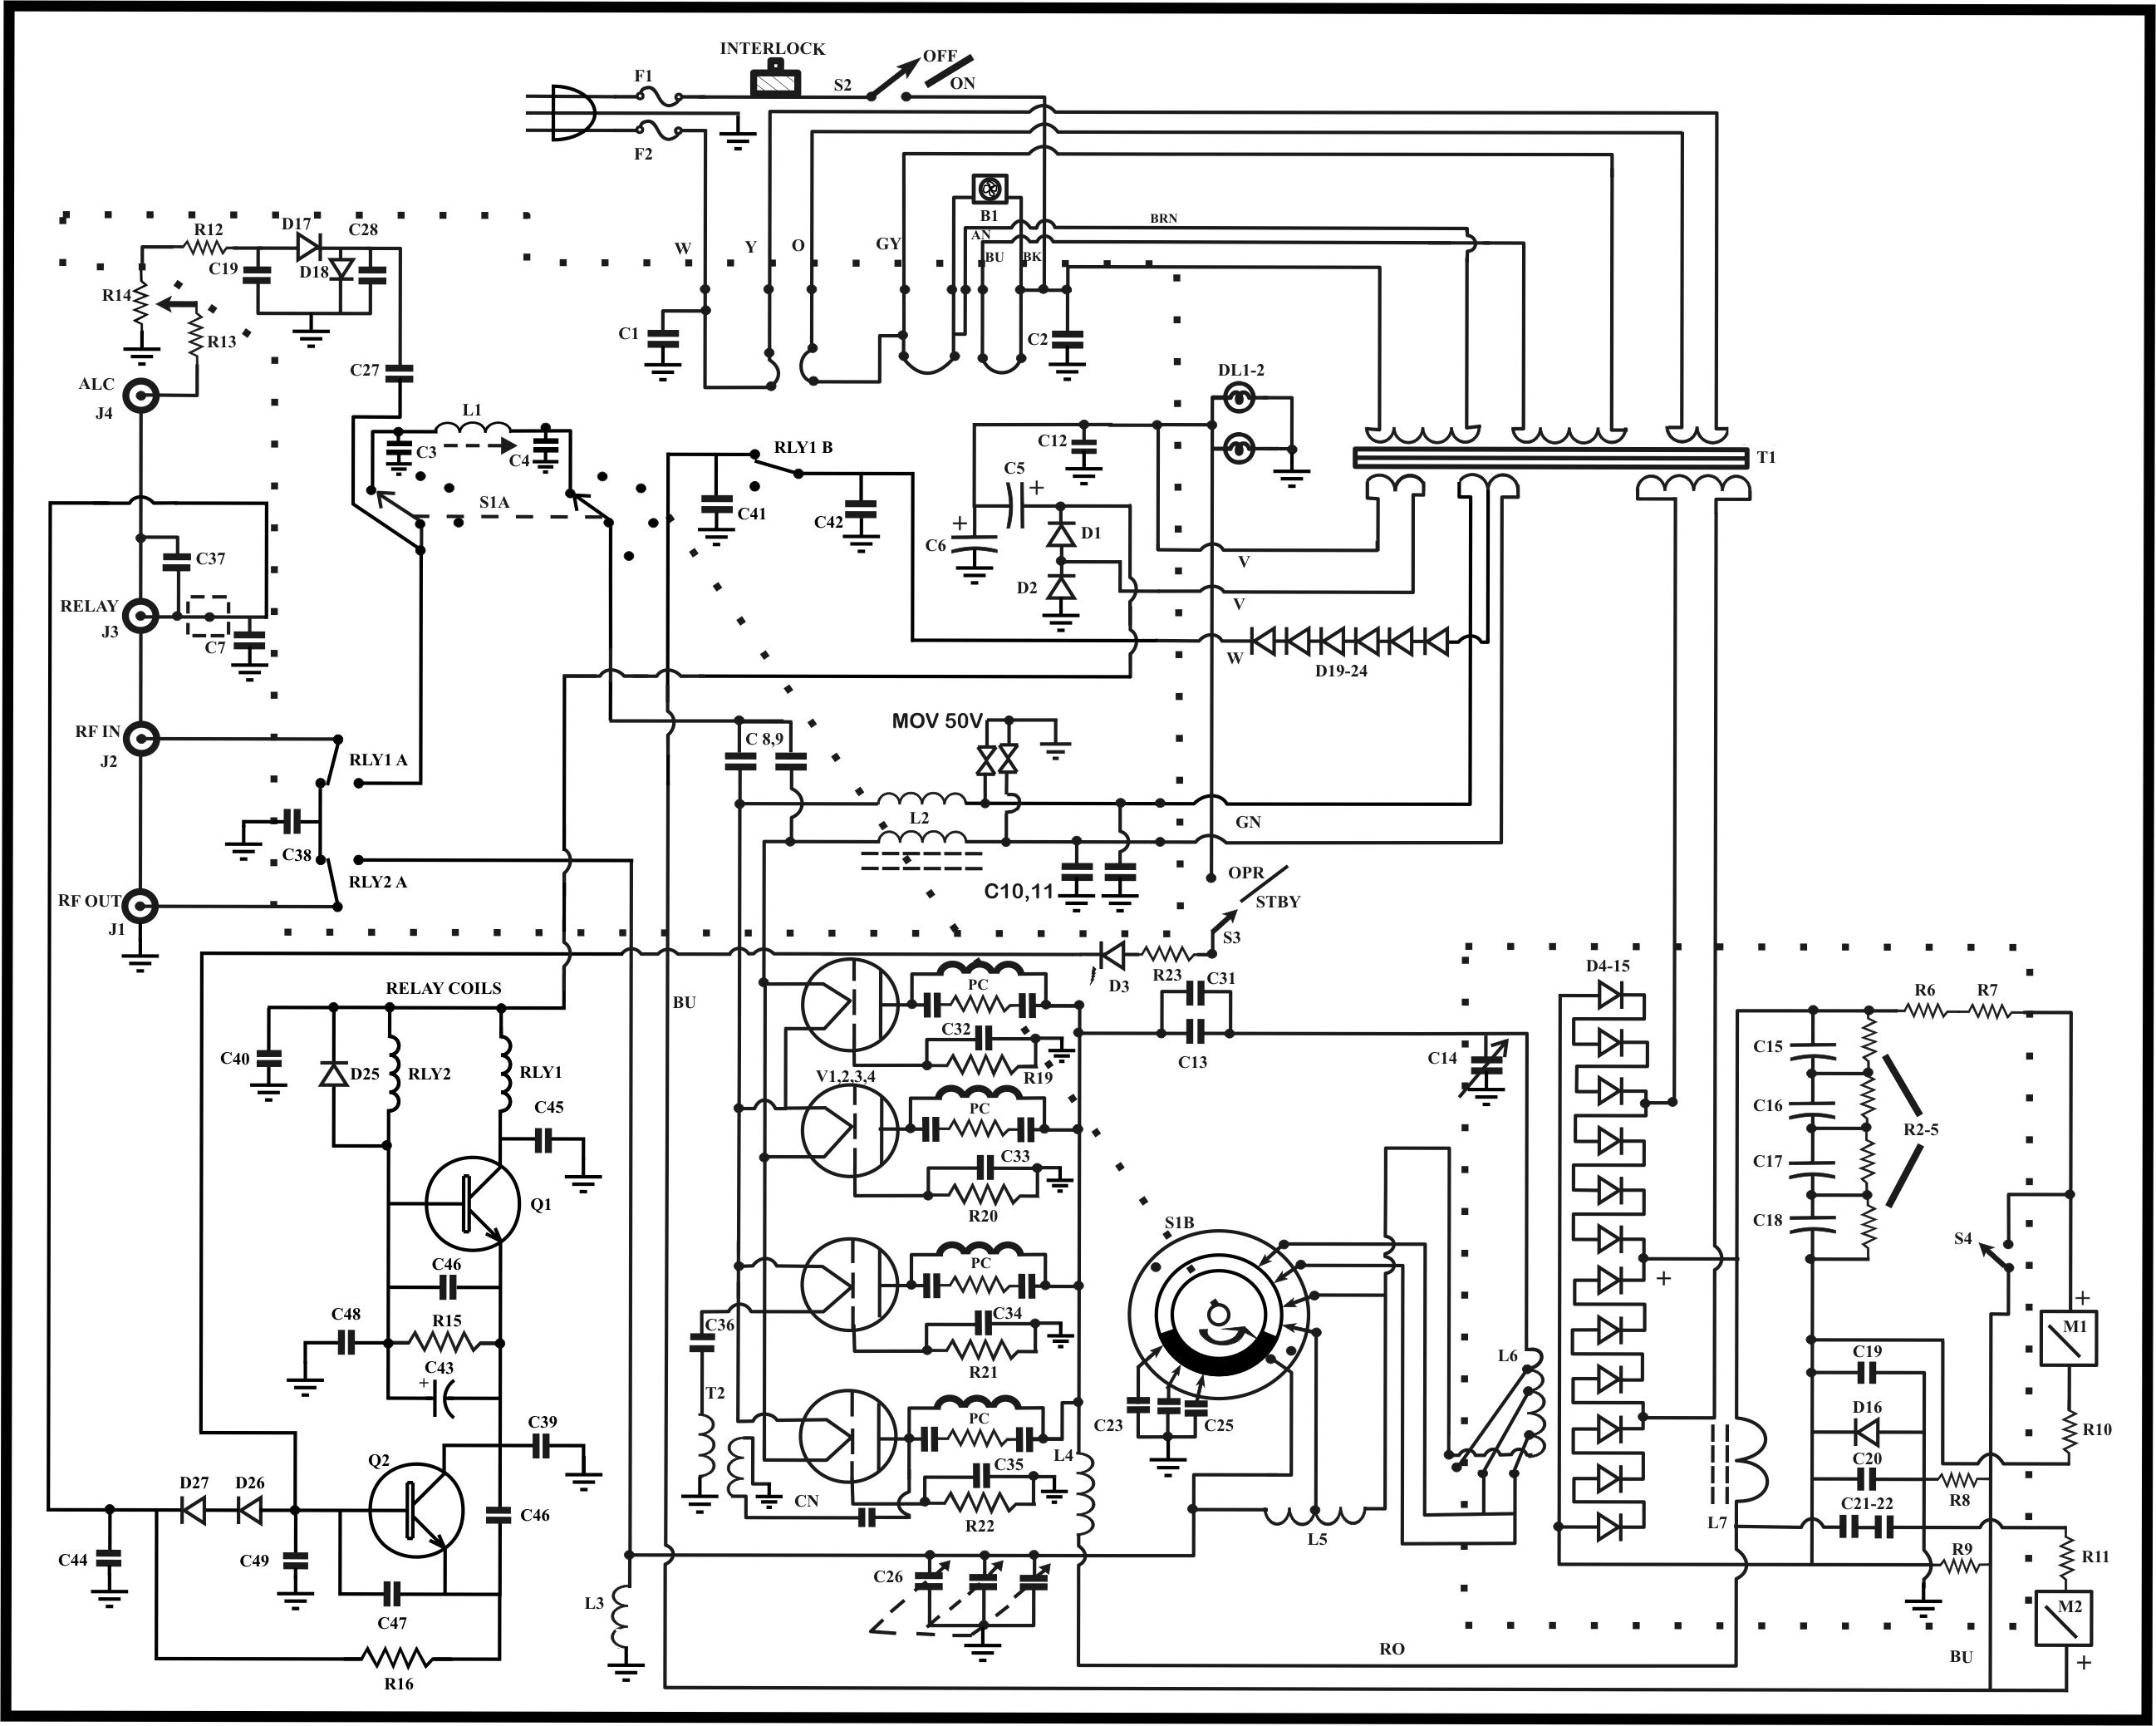 AL811H schematic latest revision modifications